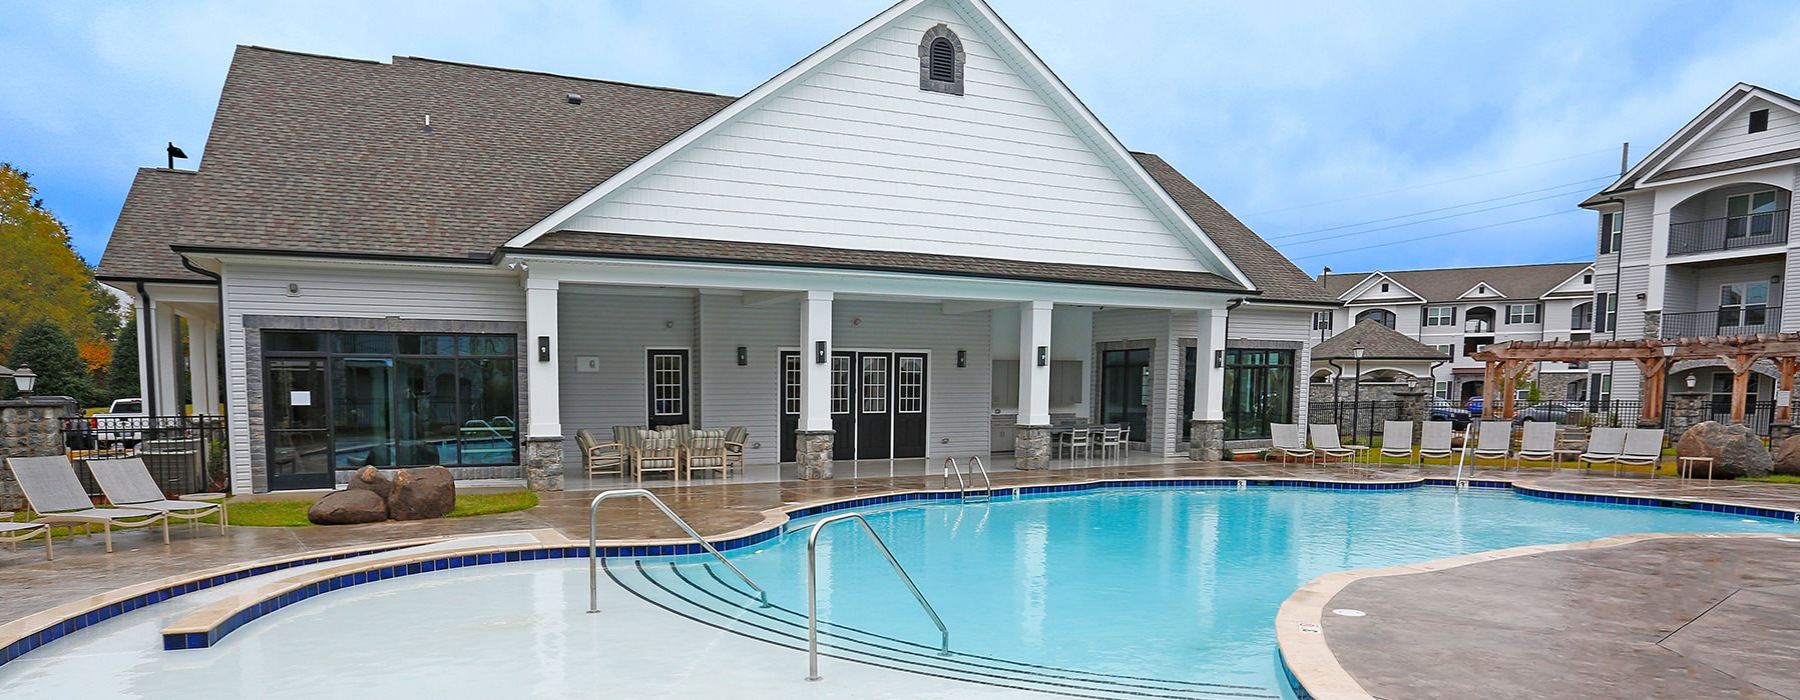 Swimming Pool With Plenty of Deck Seating At Laurel View Apartments in Concord, NC